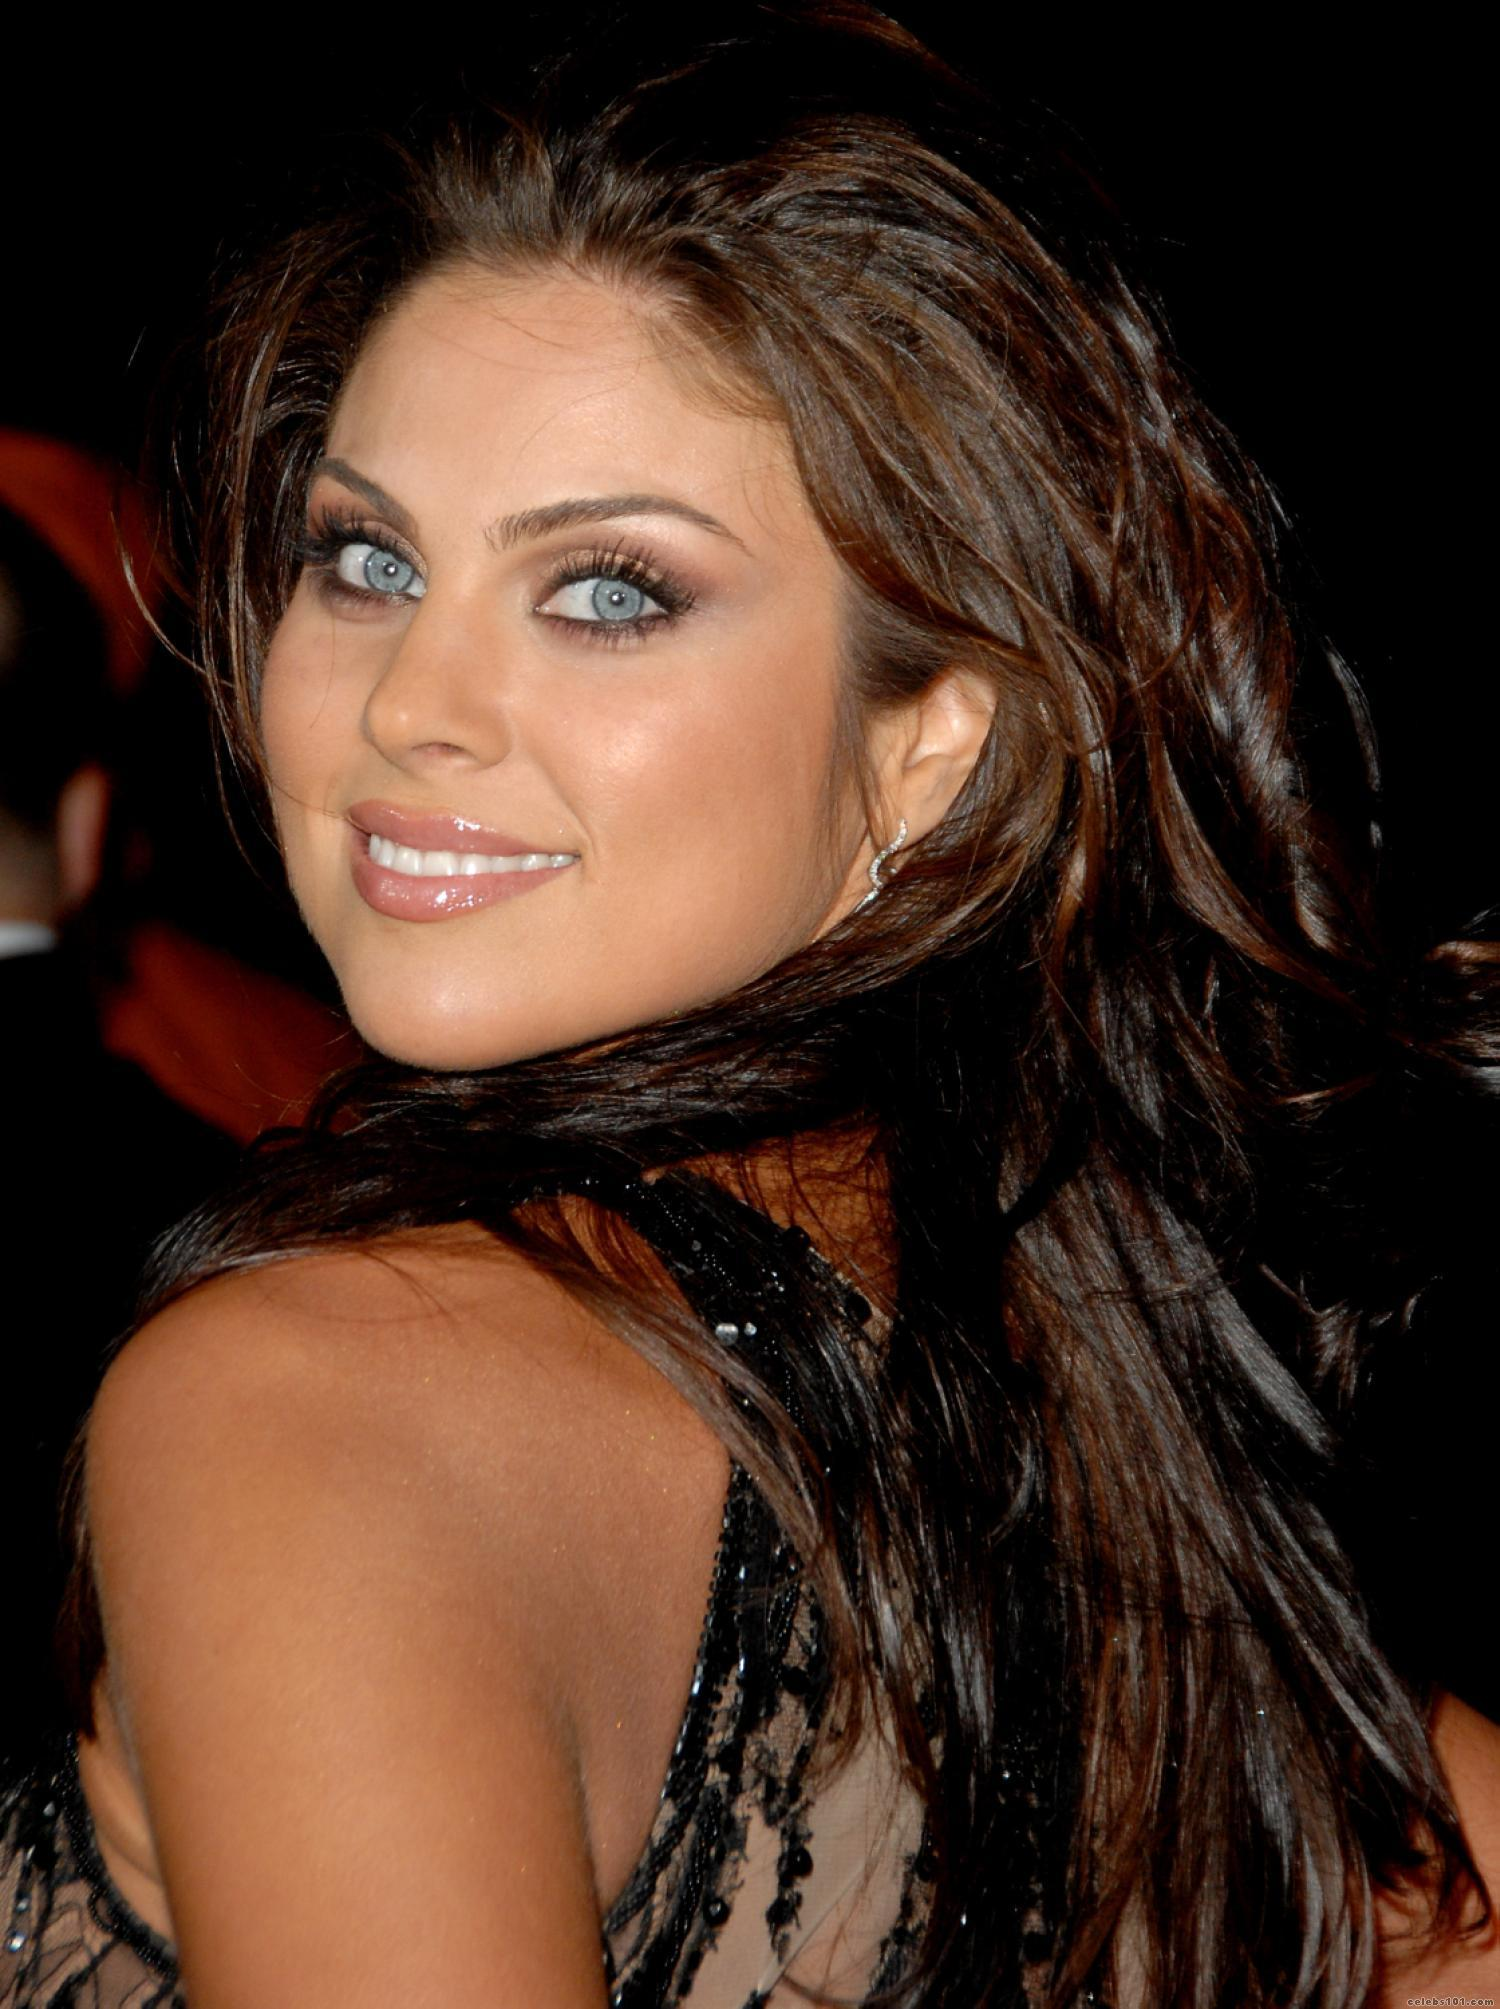 Nadia Bjorlin - Wallpaper Hot